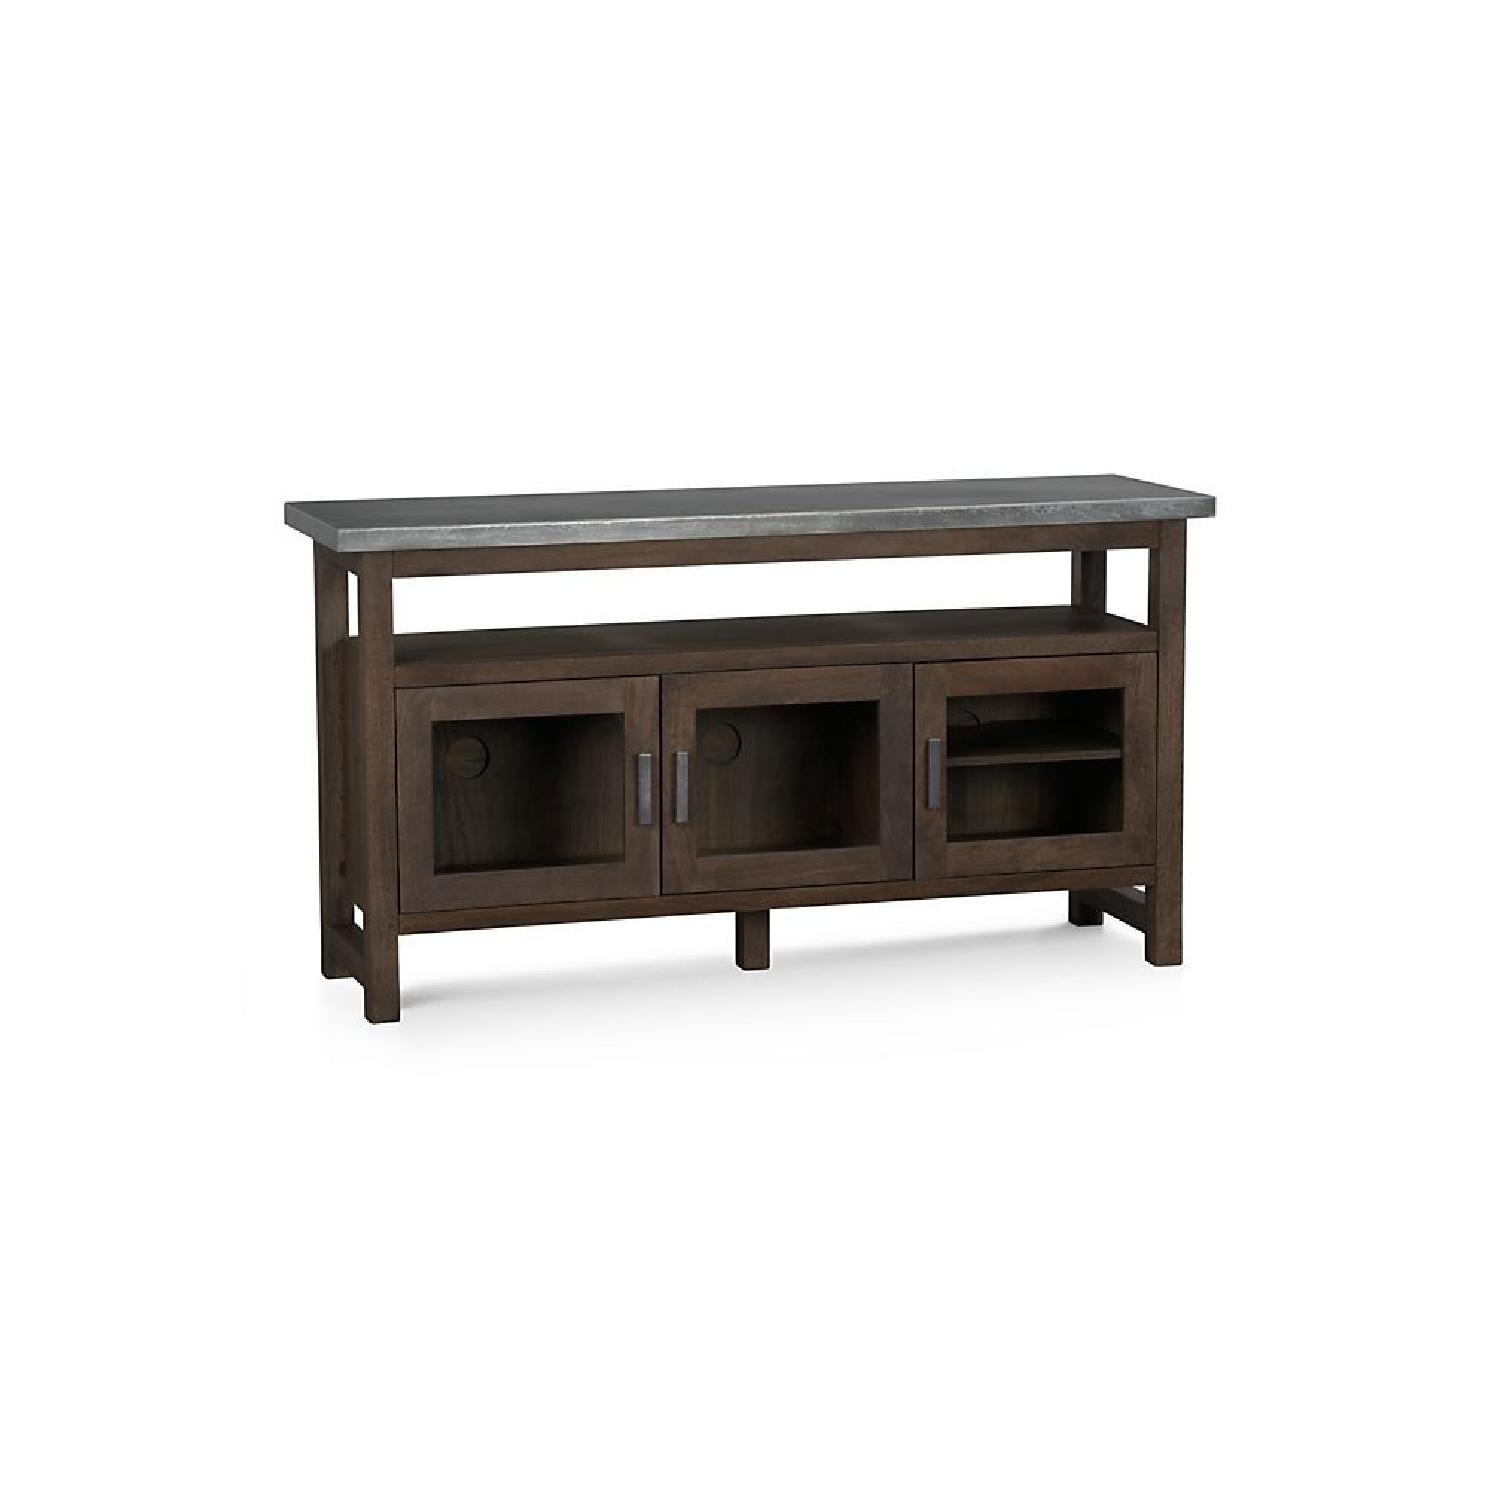 Crate & Barrel Galvin Metal Top Sideboard